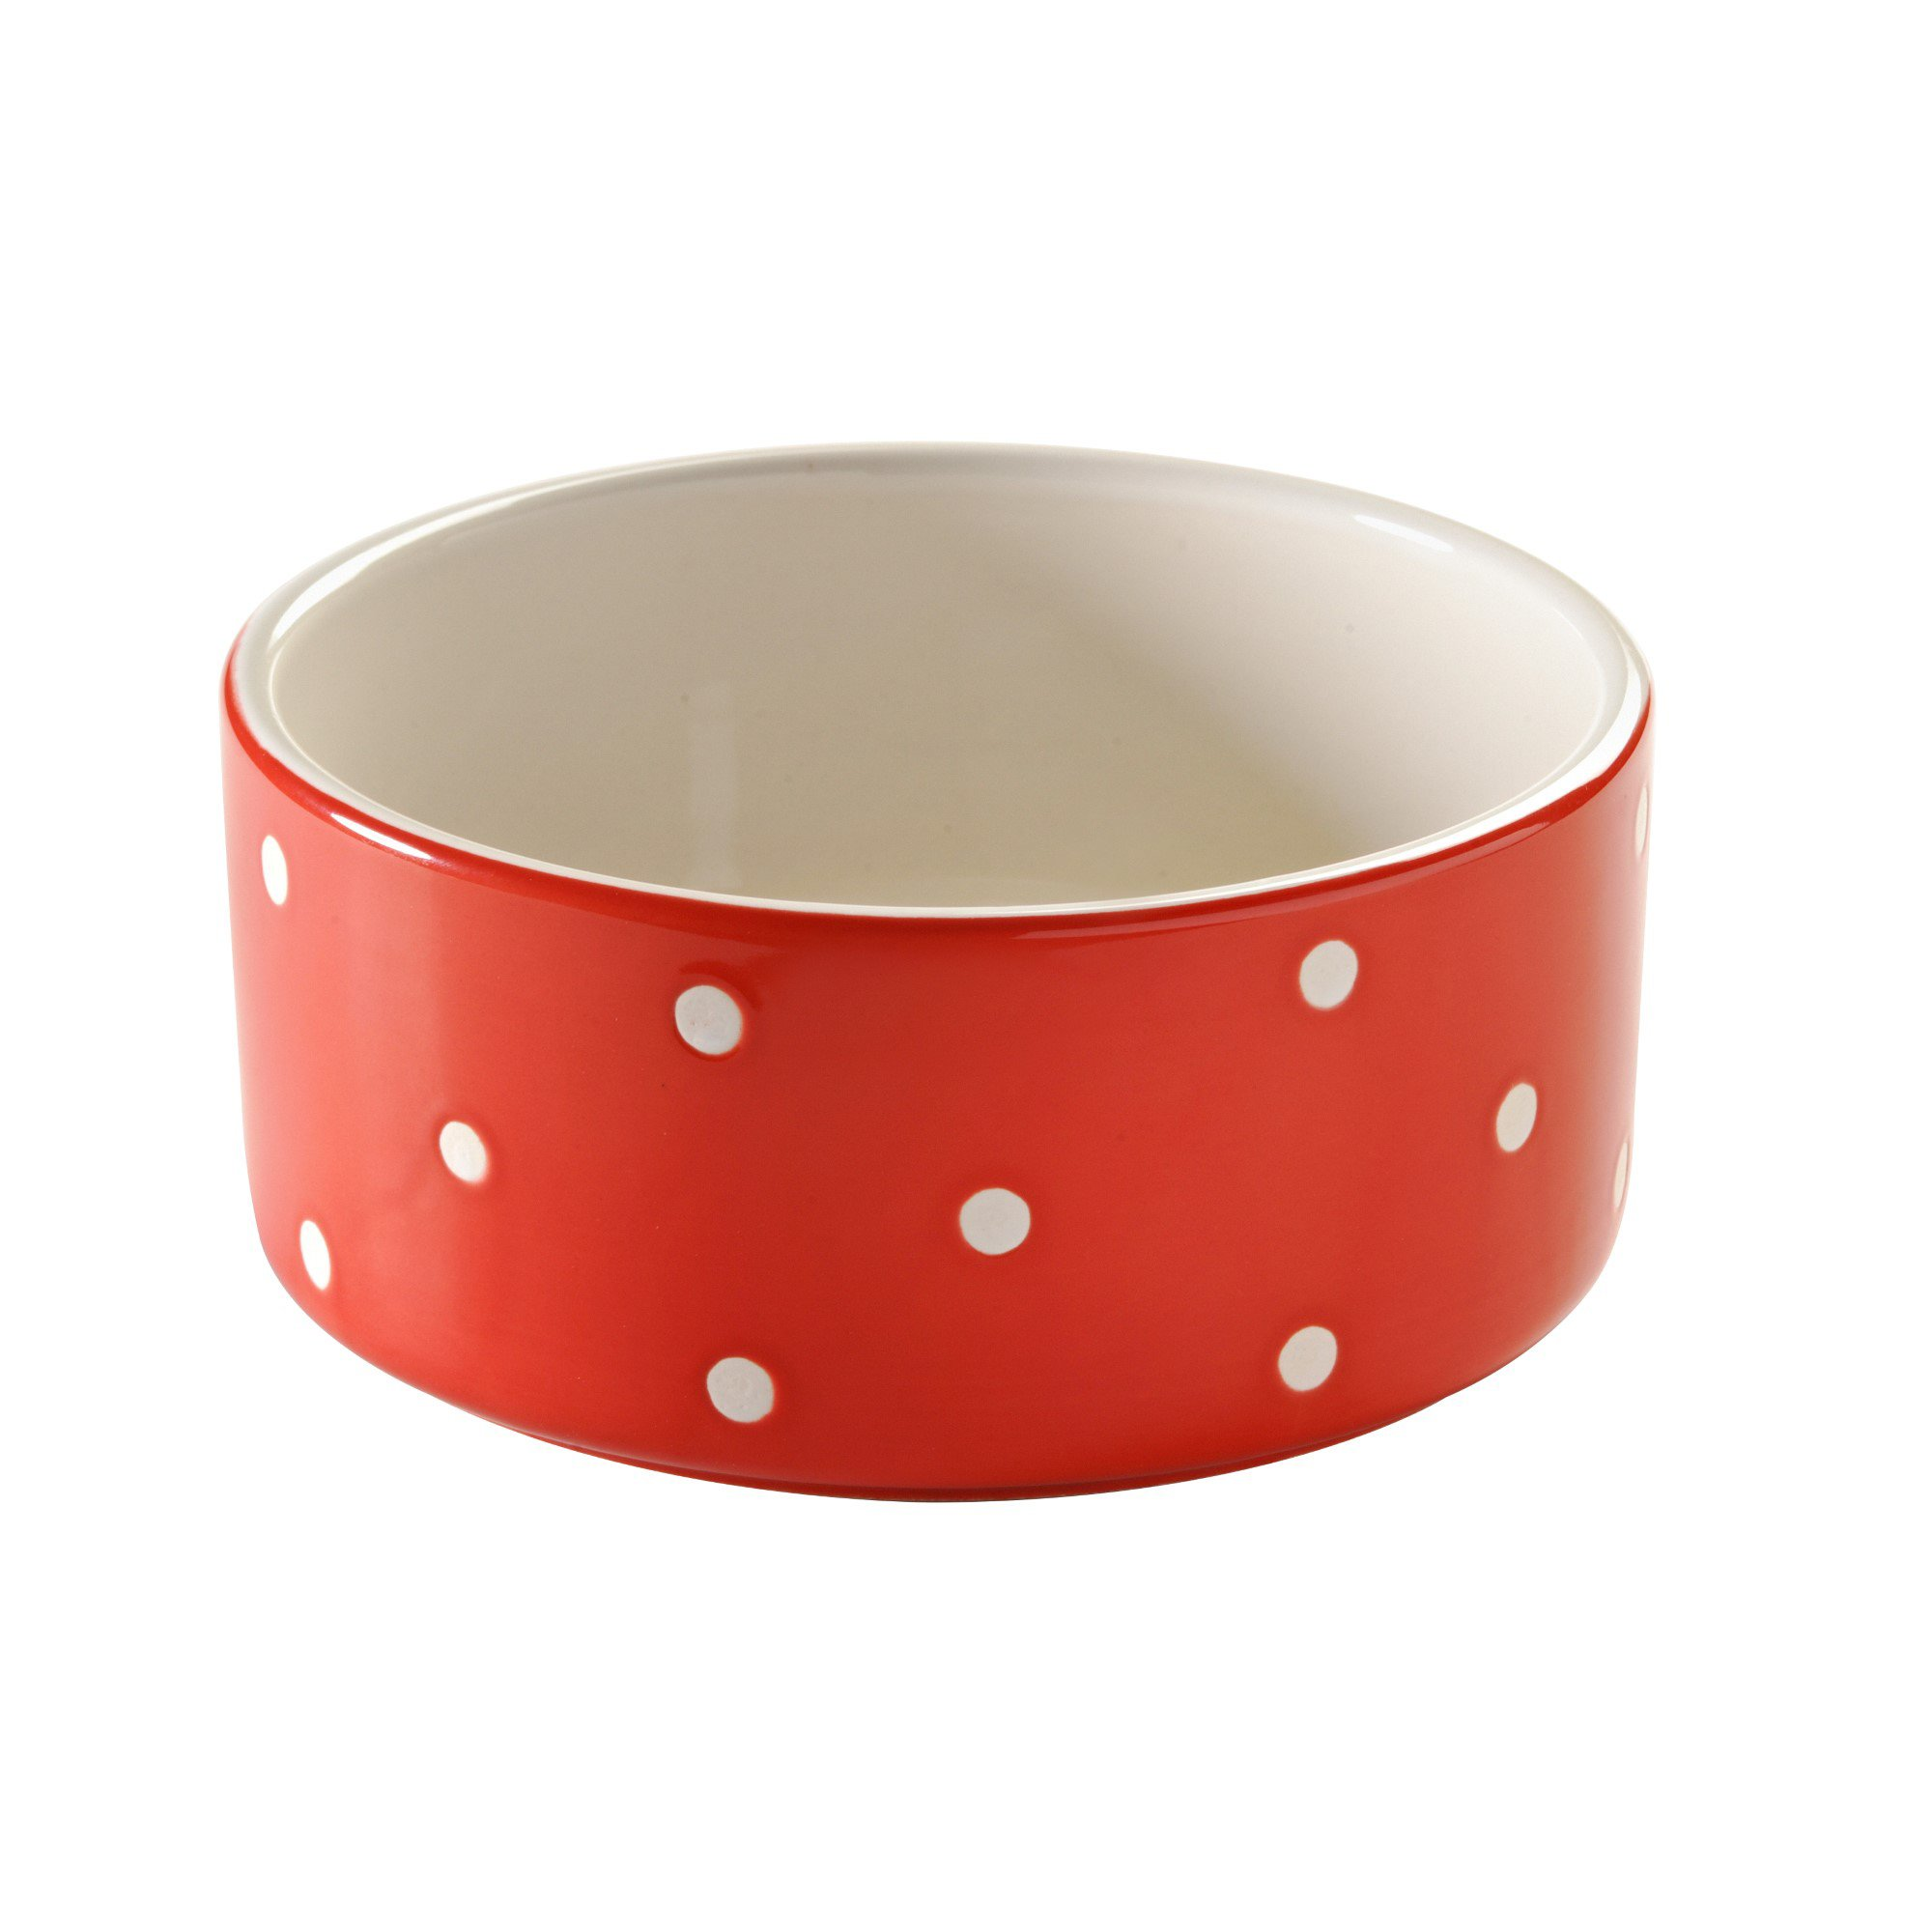 Mason Cash Polka Dot Ceramic Dog Bowl, 7-Inches, 64-Fluid Ounces, Red, White